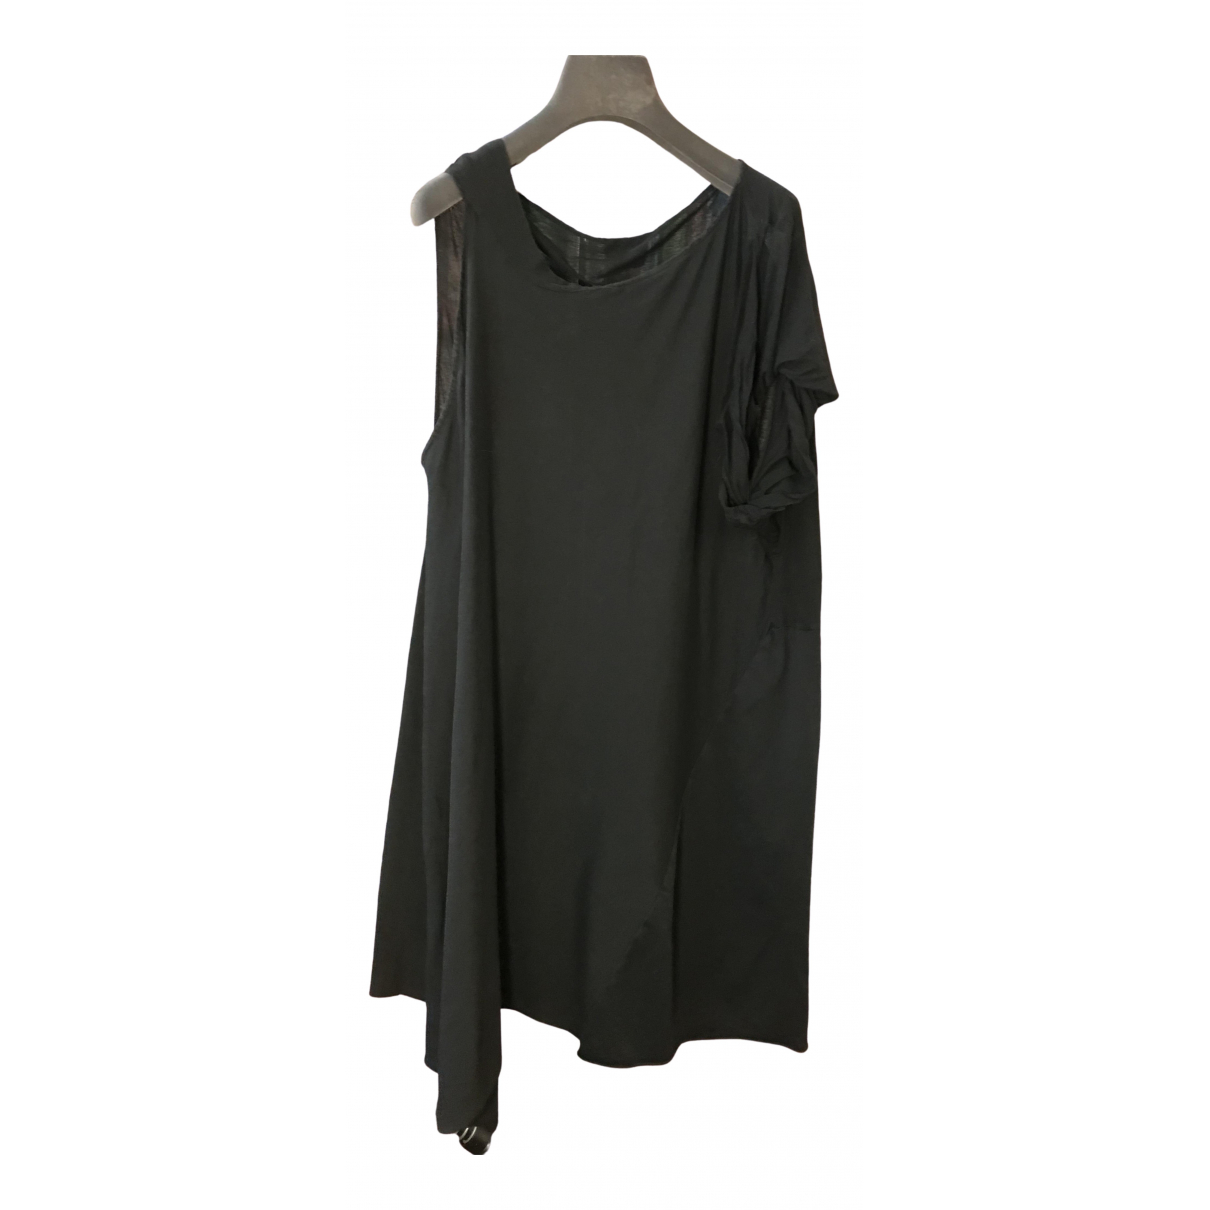 Lost & Found Ria Dunn \N Black Cotton dress for Women S International